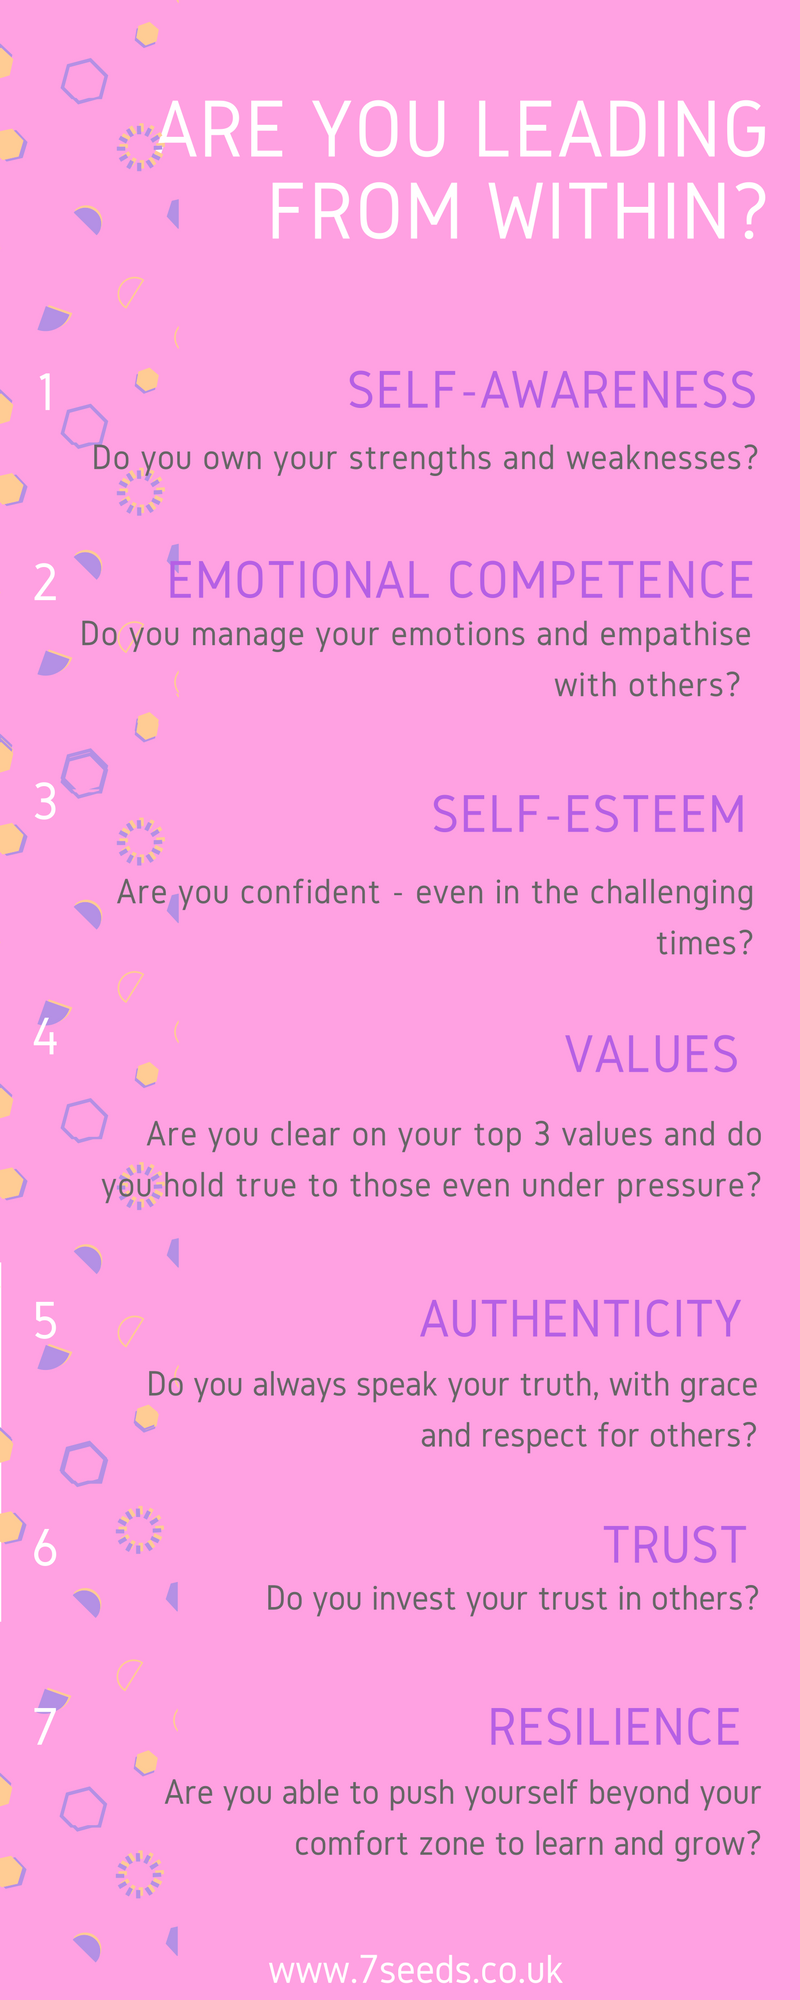 7Seeds Leading From Within Infographic